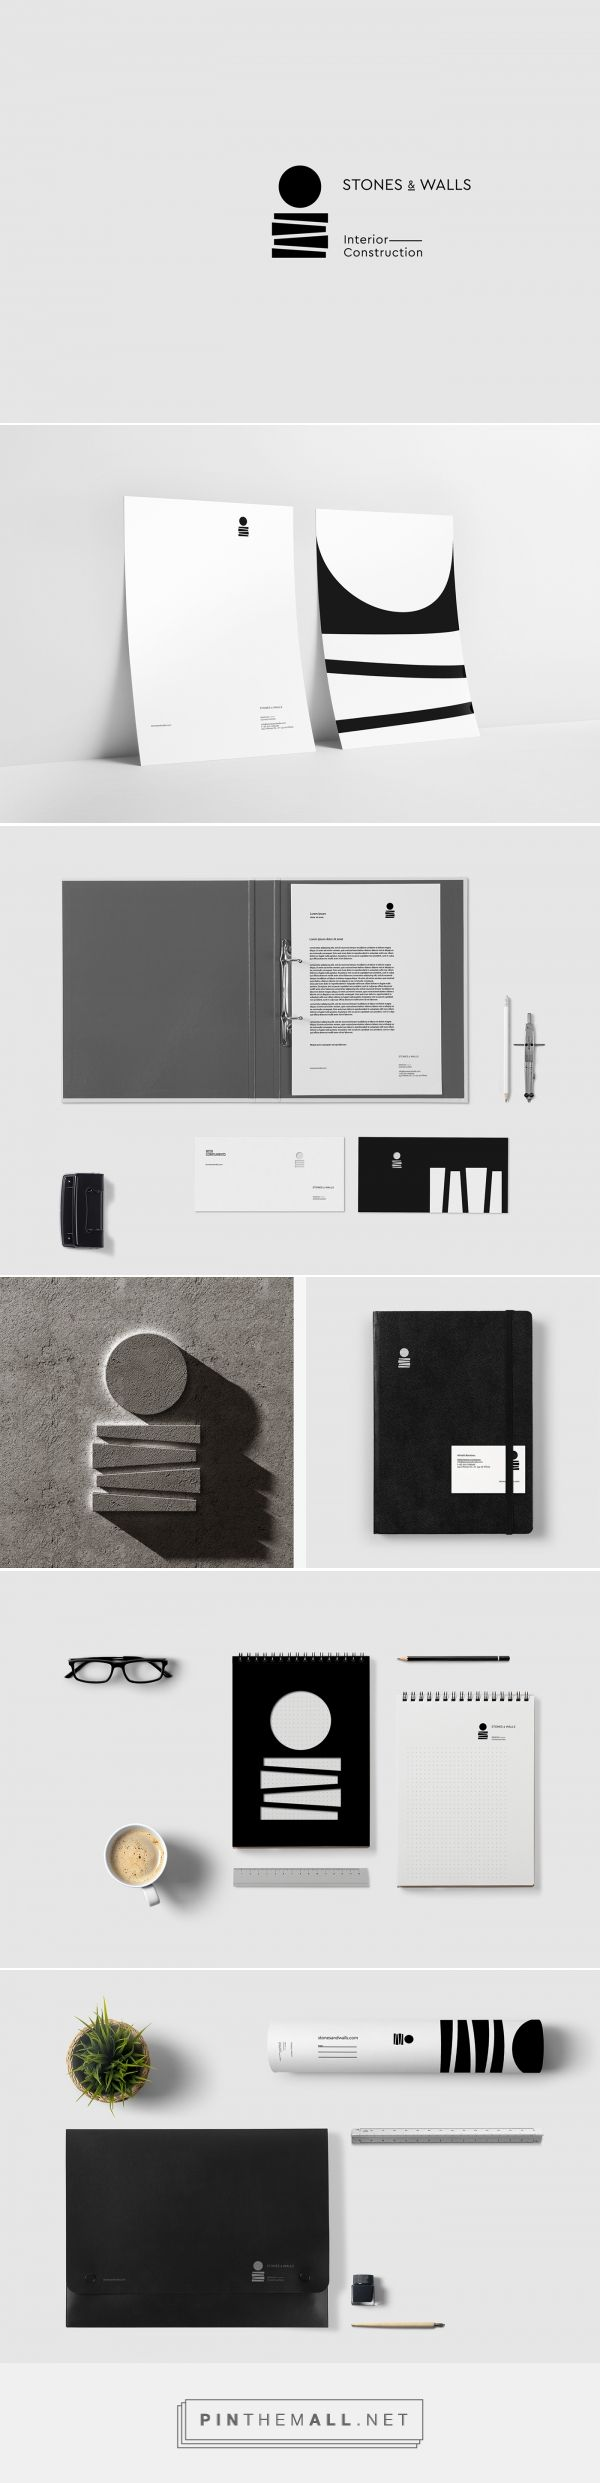 Stones & Walls Interior Construction Branding by Luminous Design Group | Fivestar Branding Agency – Design and Branding Agency & Curated Inspiration Gallery http://jrstudioweb.com/diseno-grafico/diseno-de-logotipos/